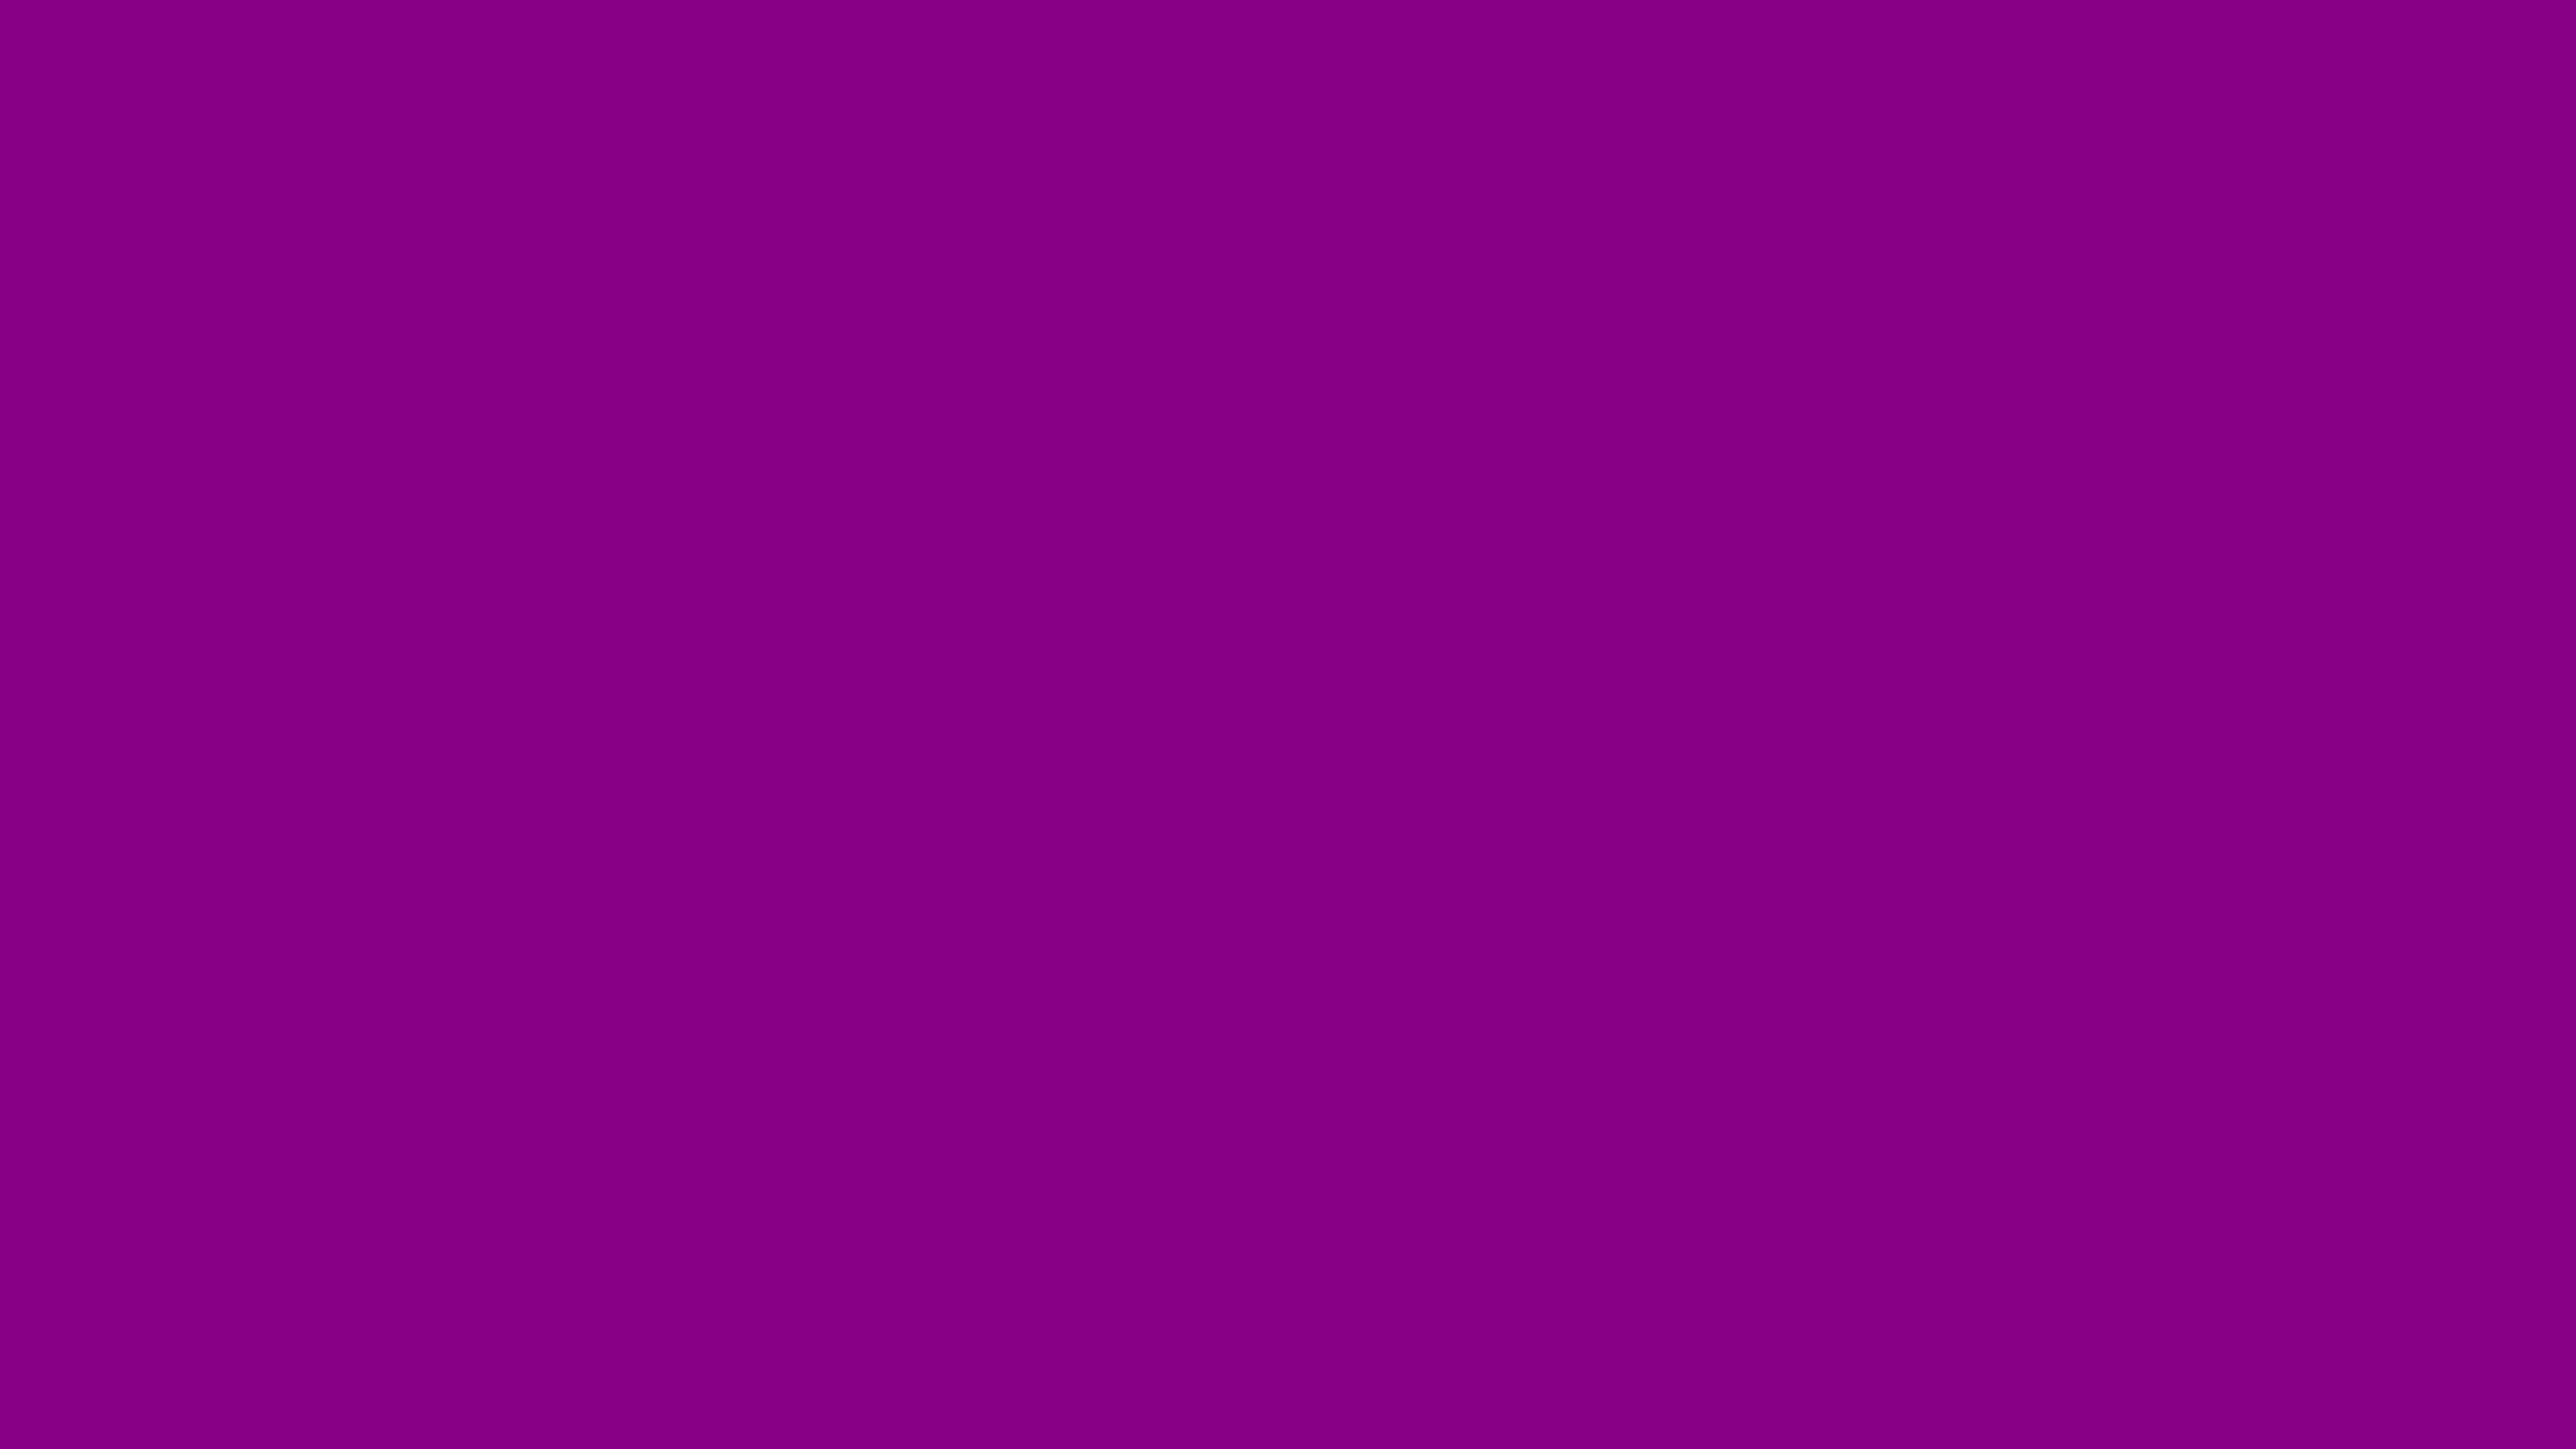 3840x2160 Mardi Gras Solid Color Background